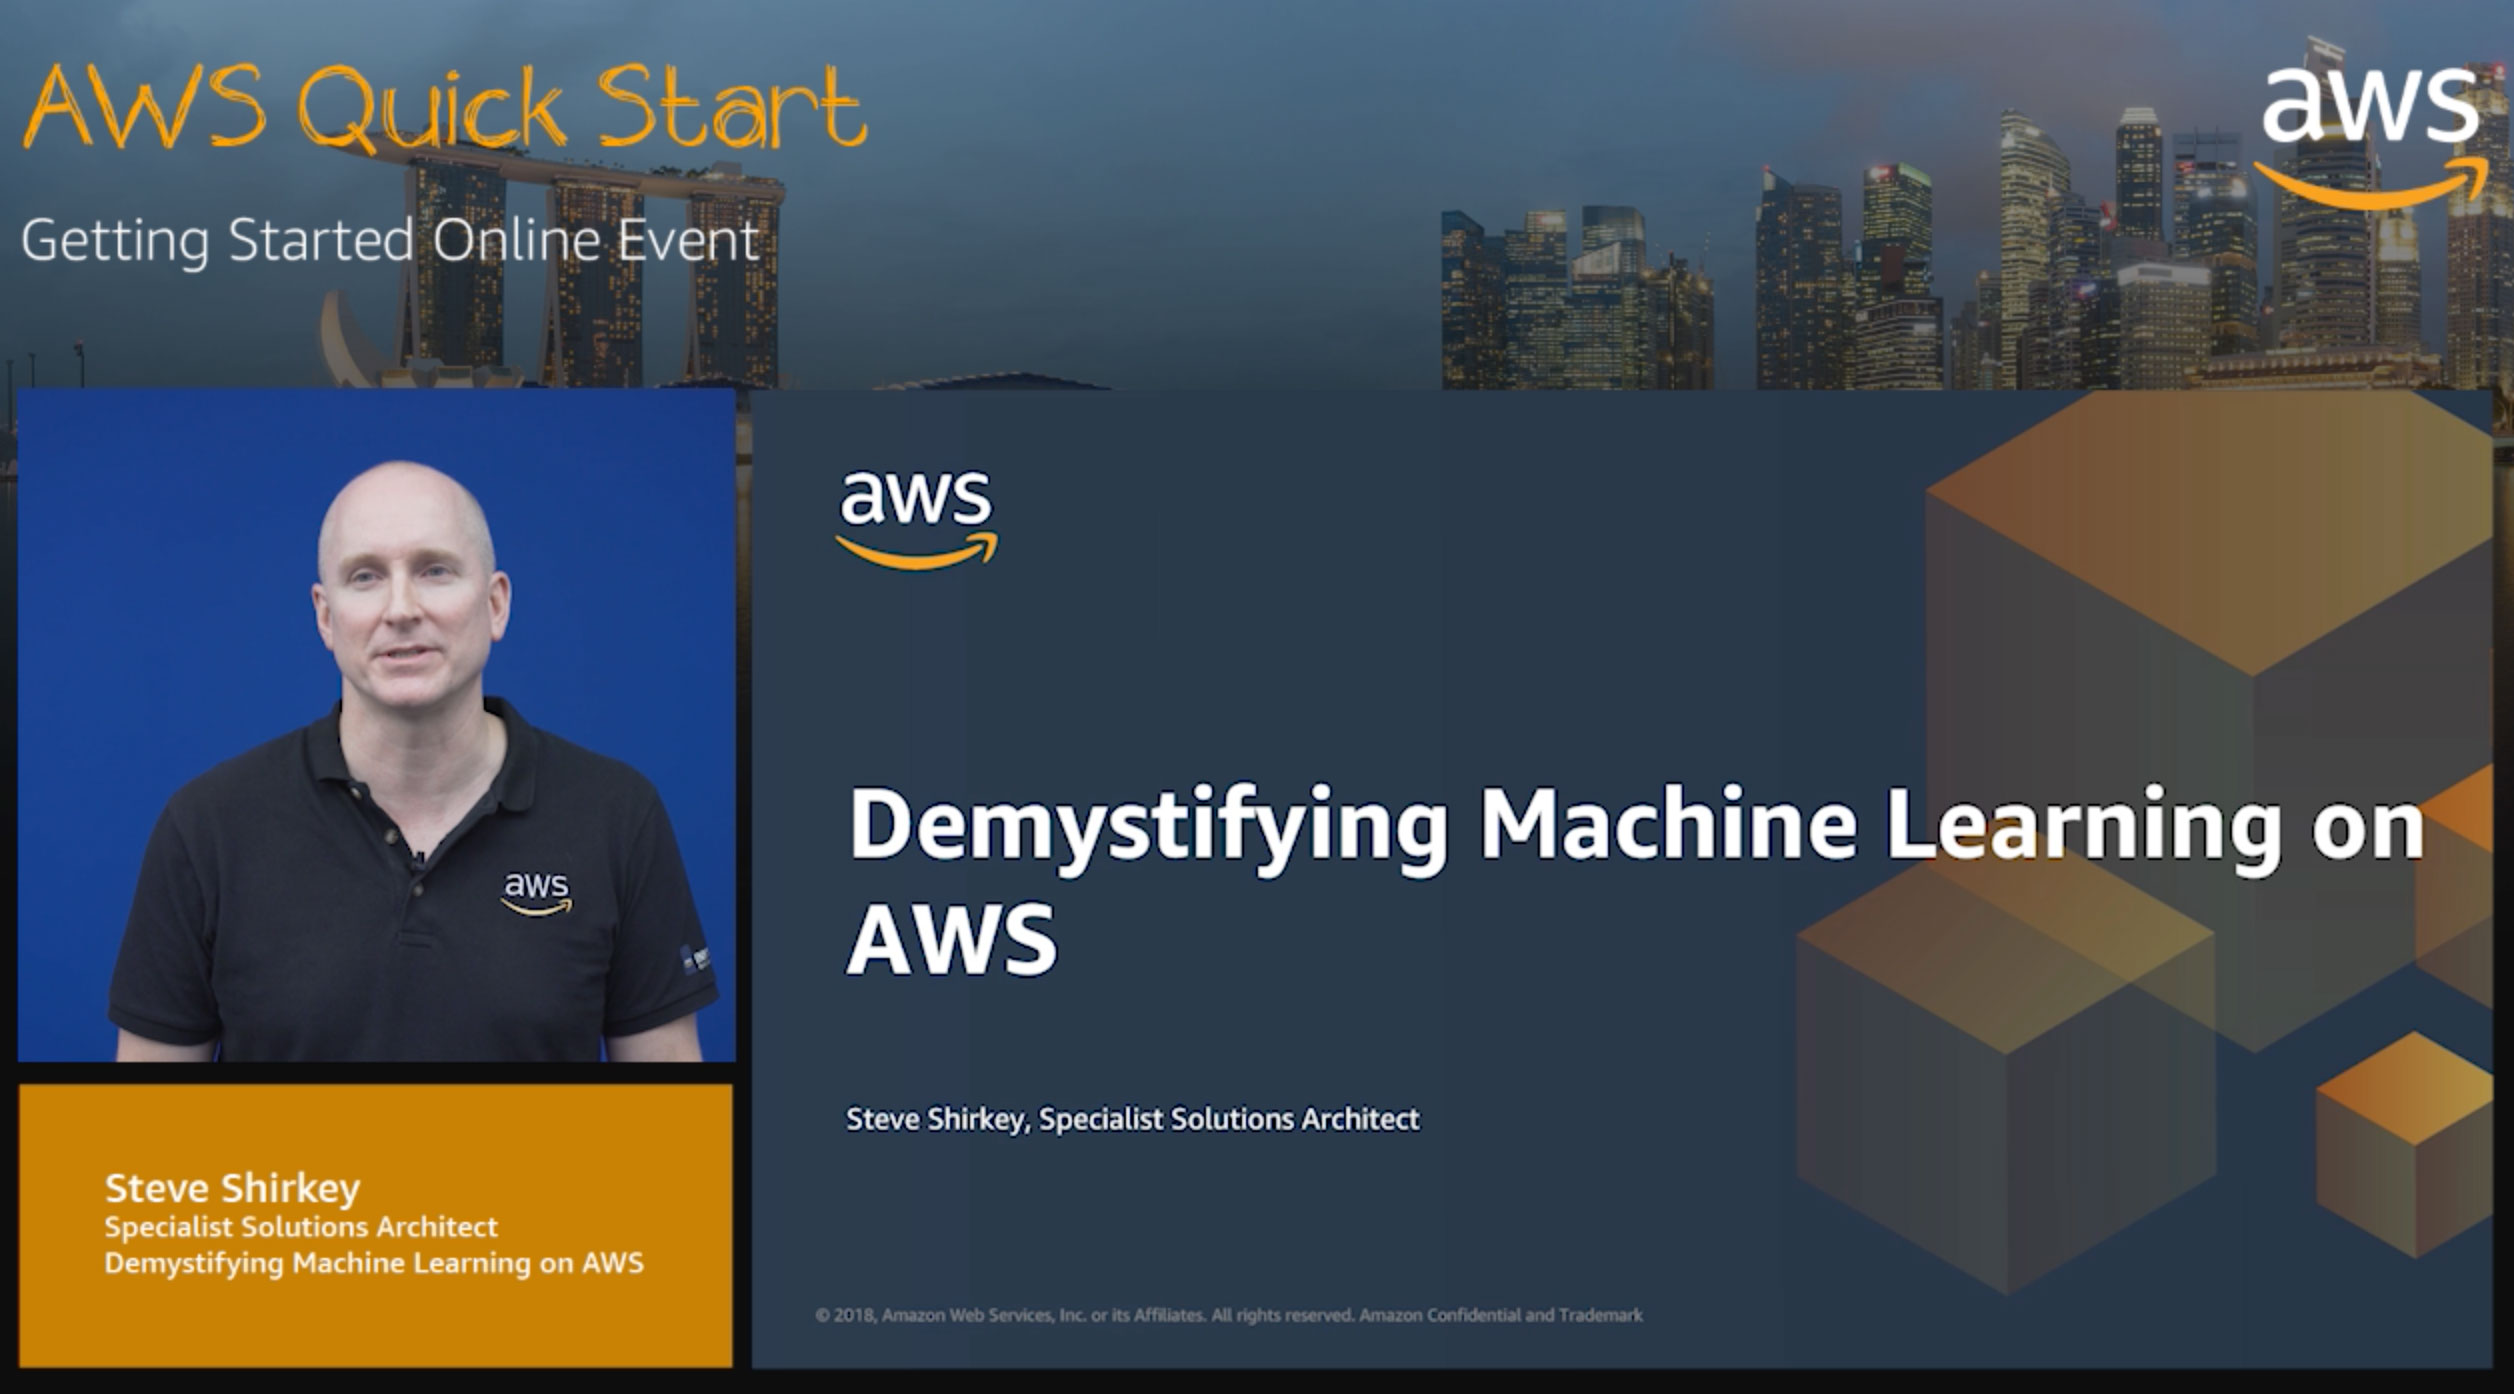 L200: Demystifying Machine Learning on AWS